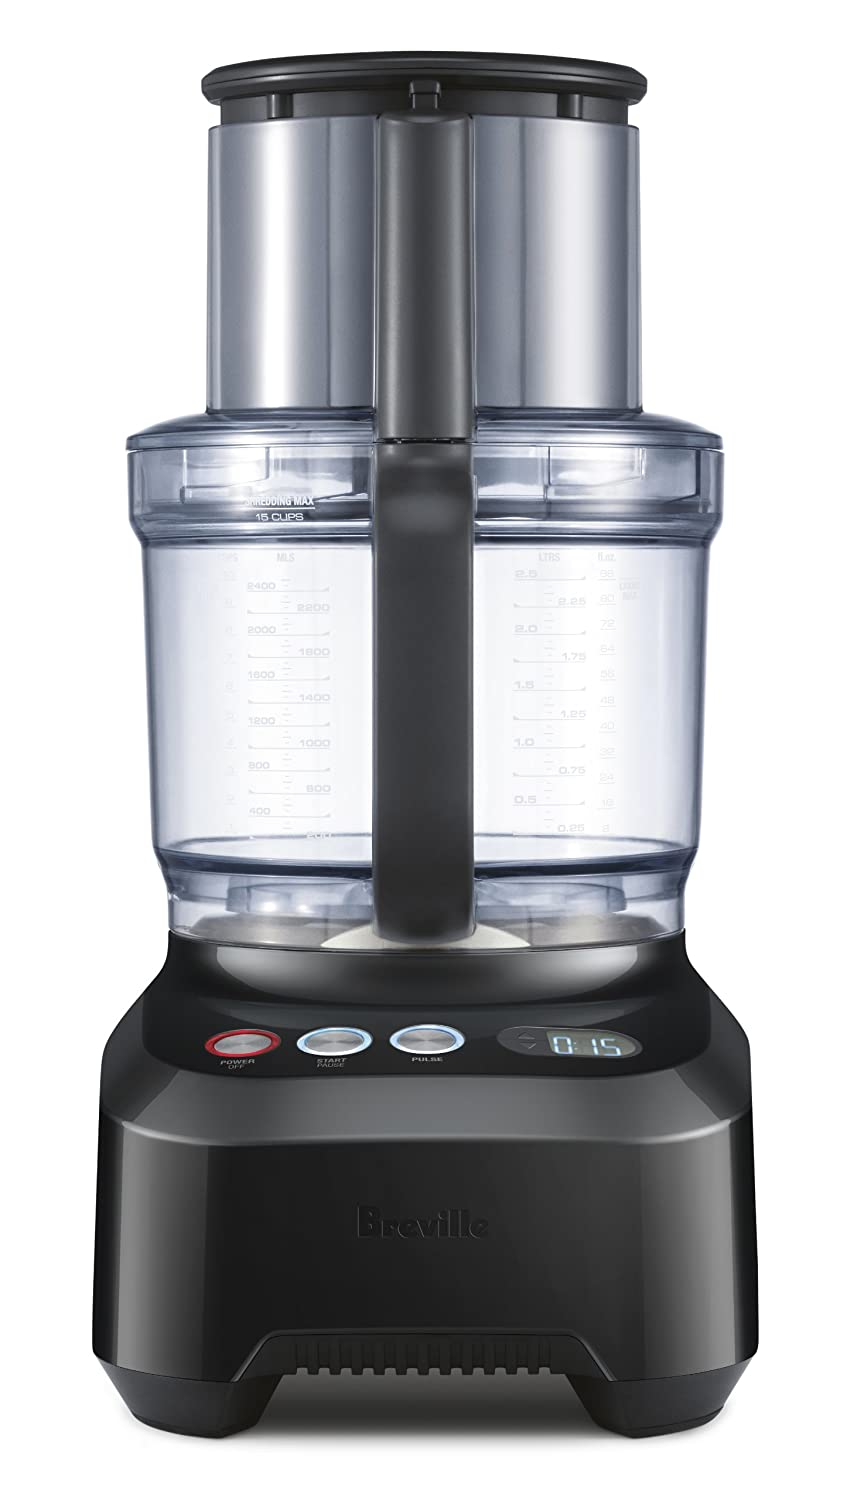 Breville BFP800BSXL Sous Chef Food Processor, Black Sesame